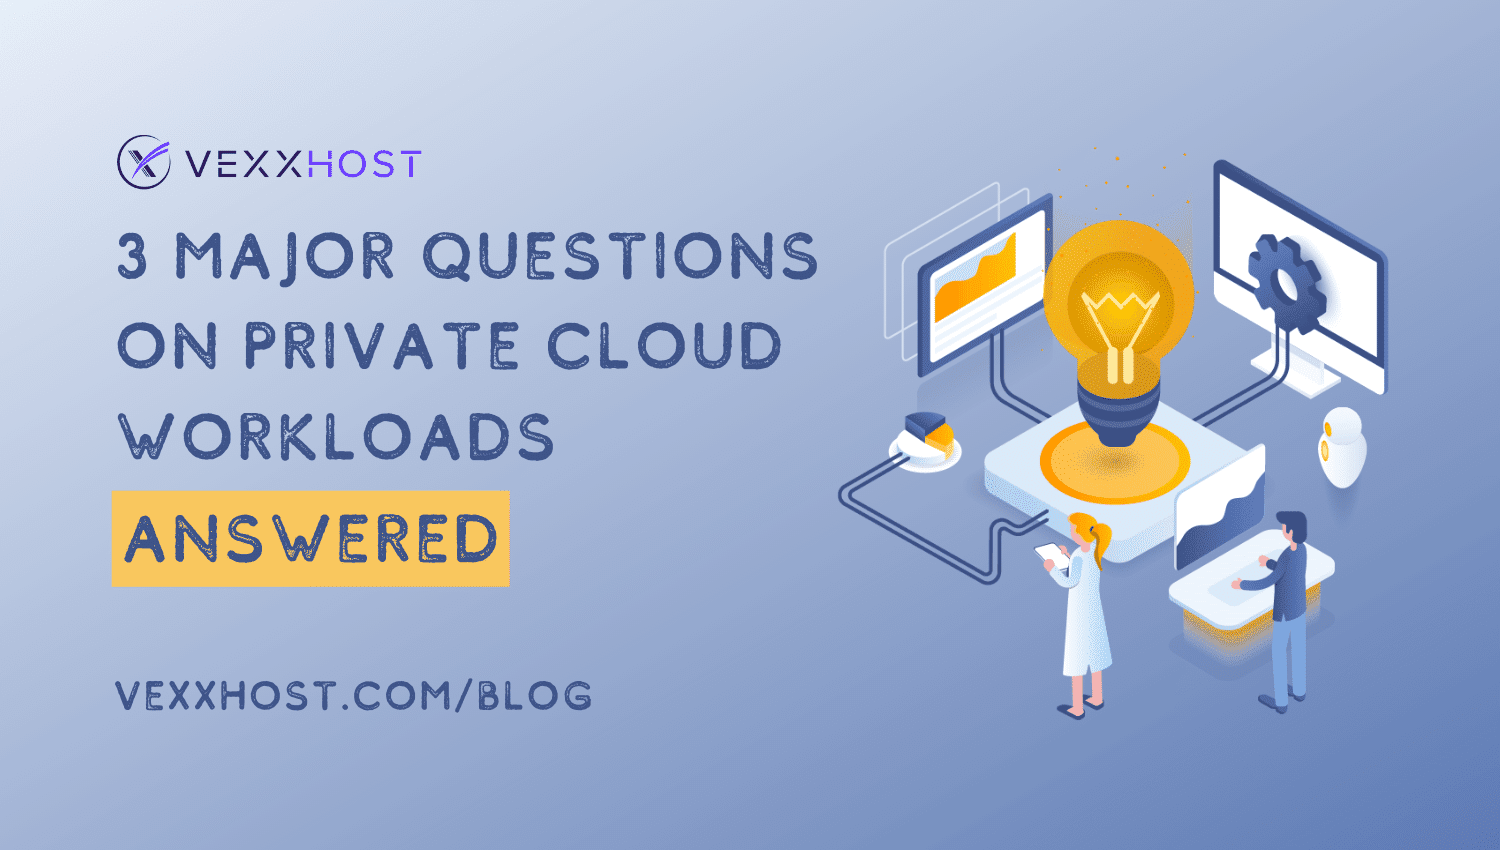 3-Major-Questions-on-Private-Cloud-Workloads-Answered